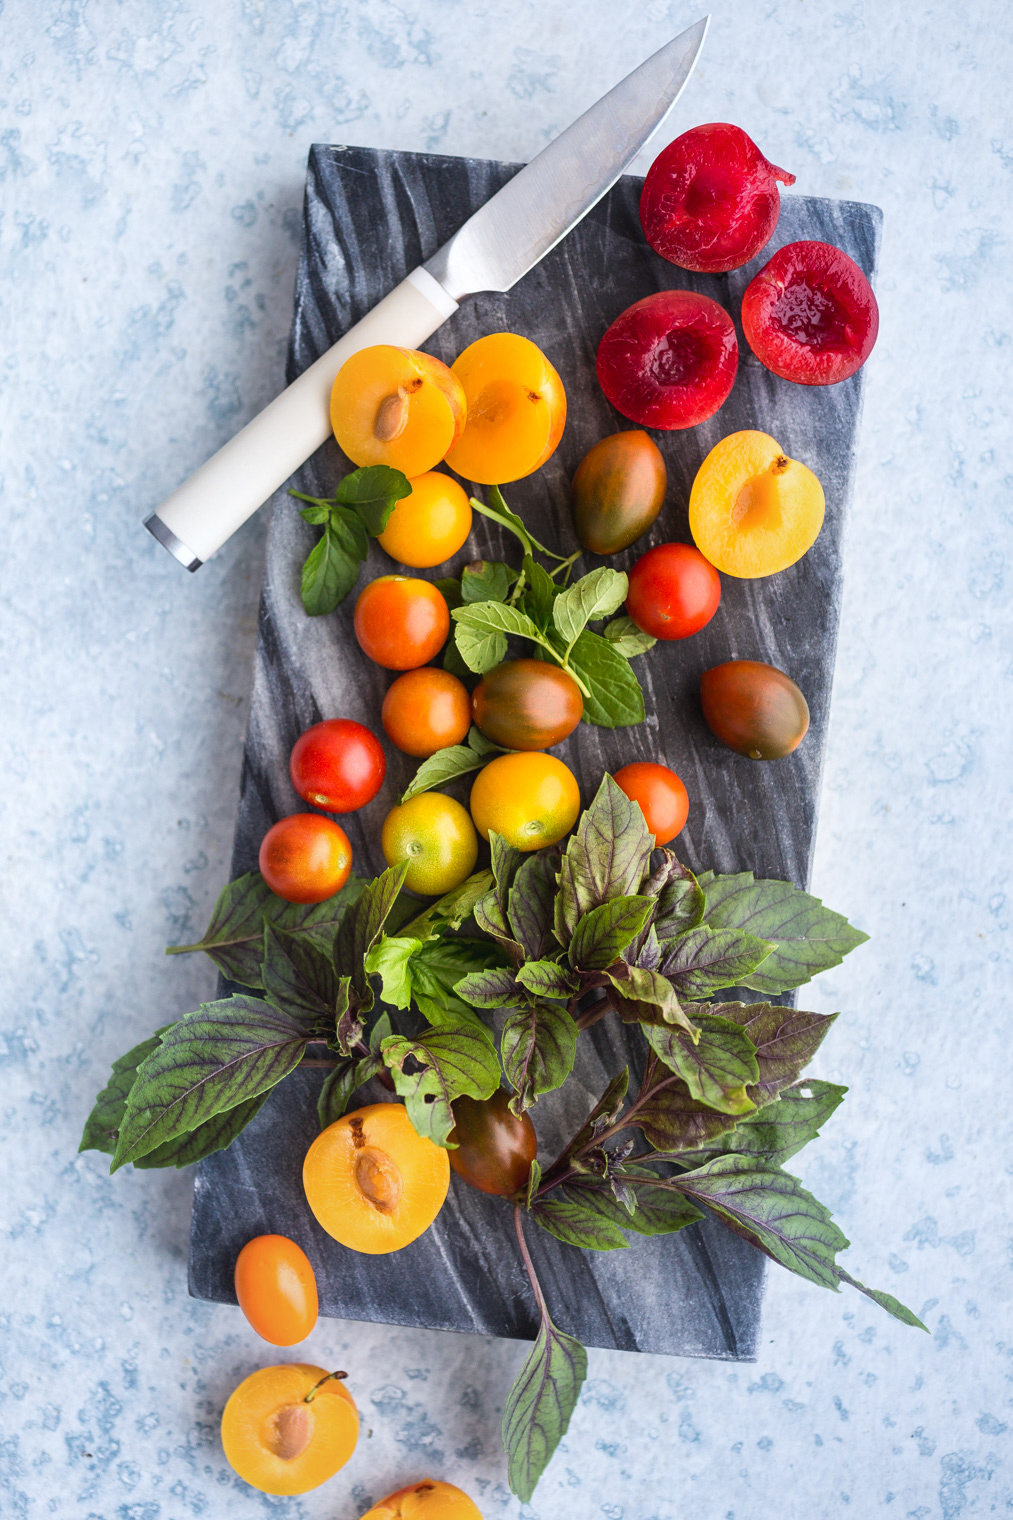 fresh plums, tomatoes, and herbs on gray serving board